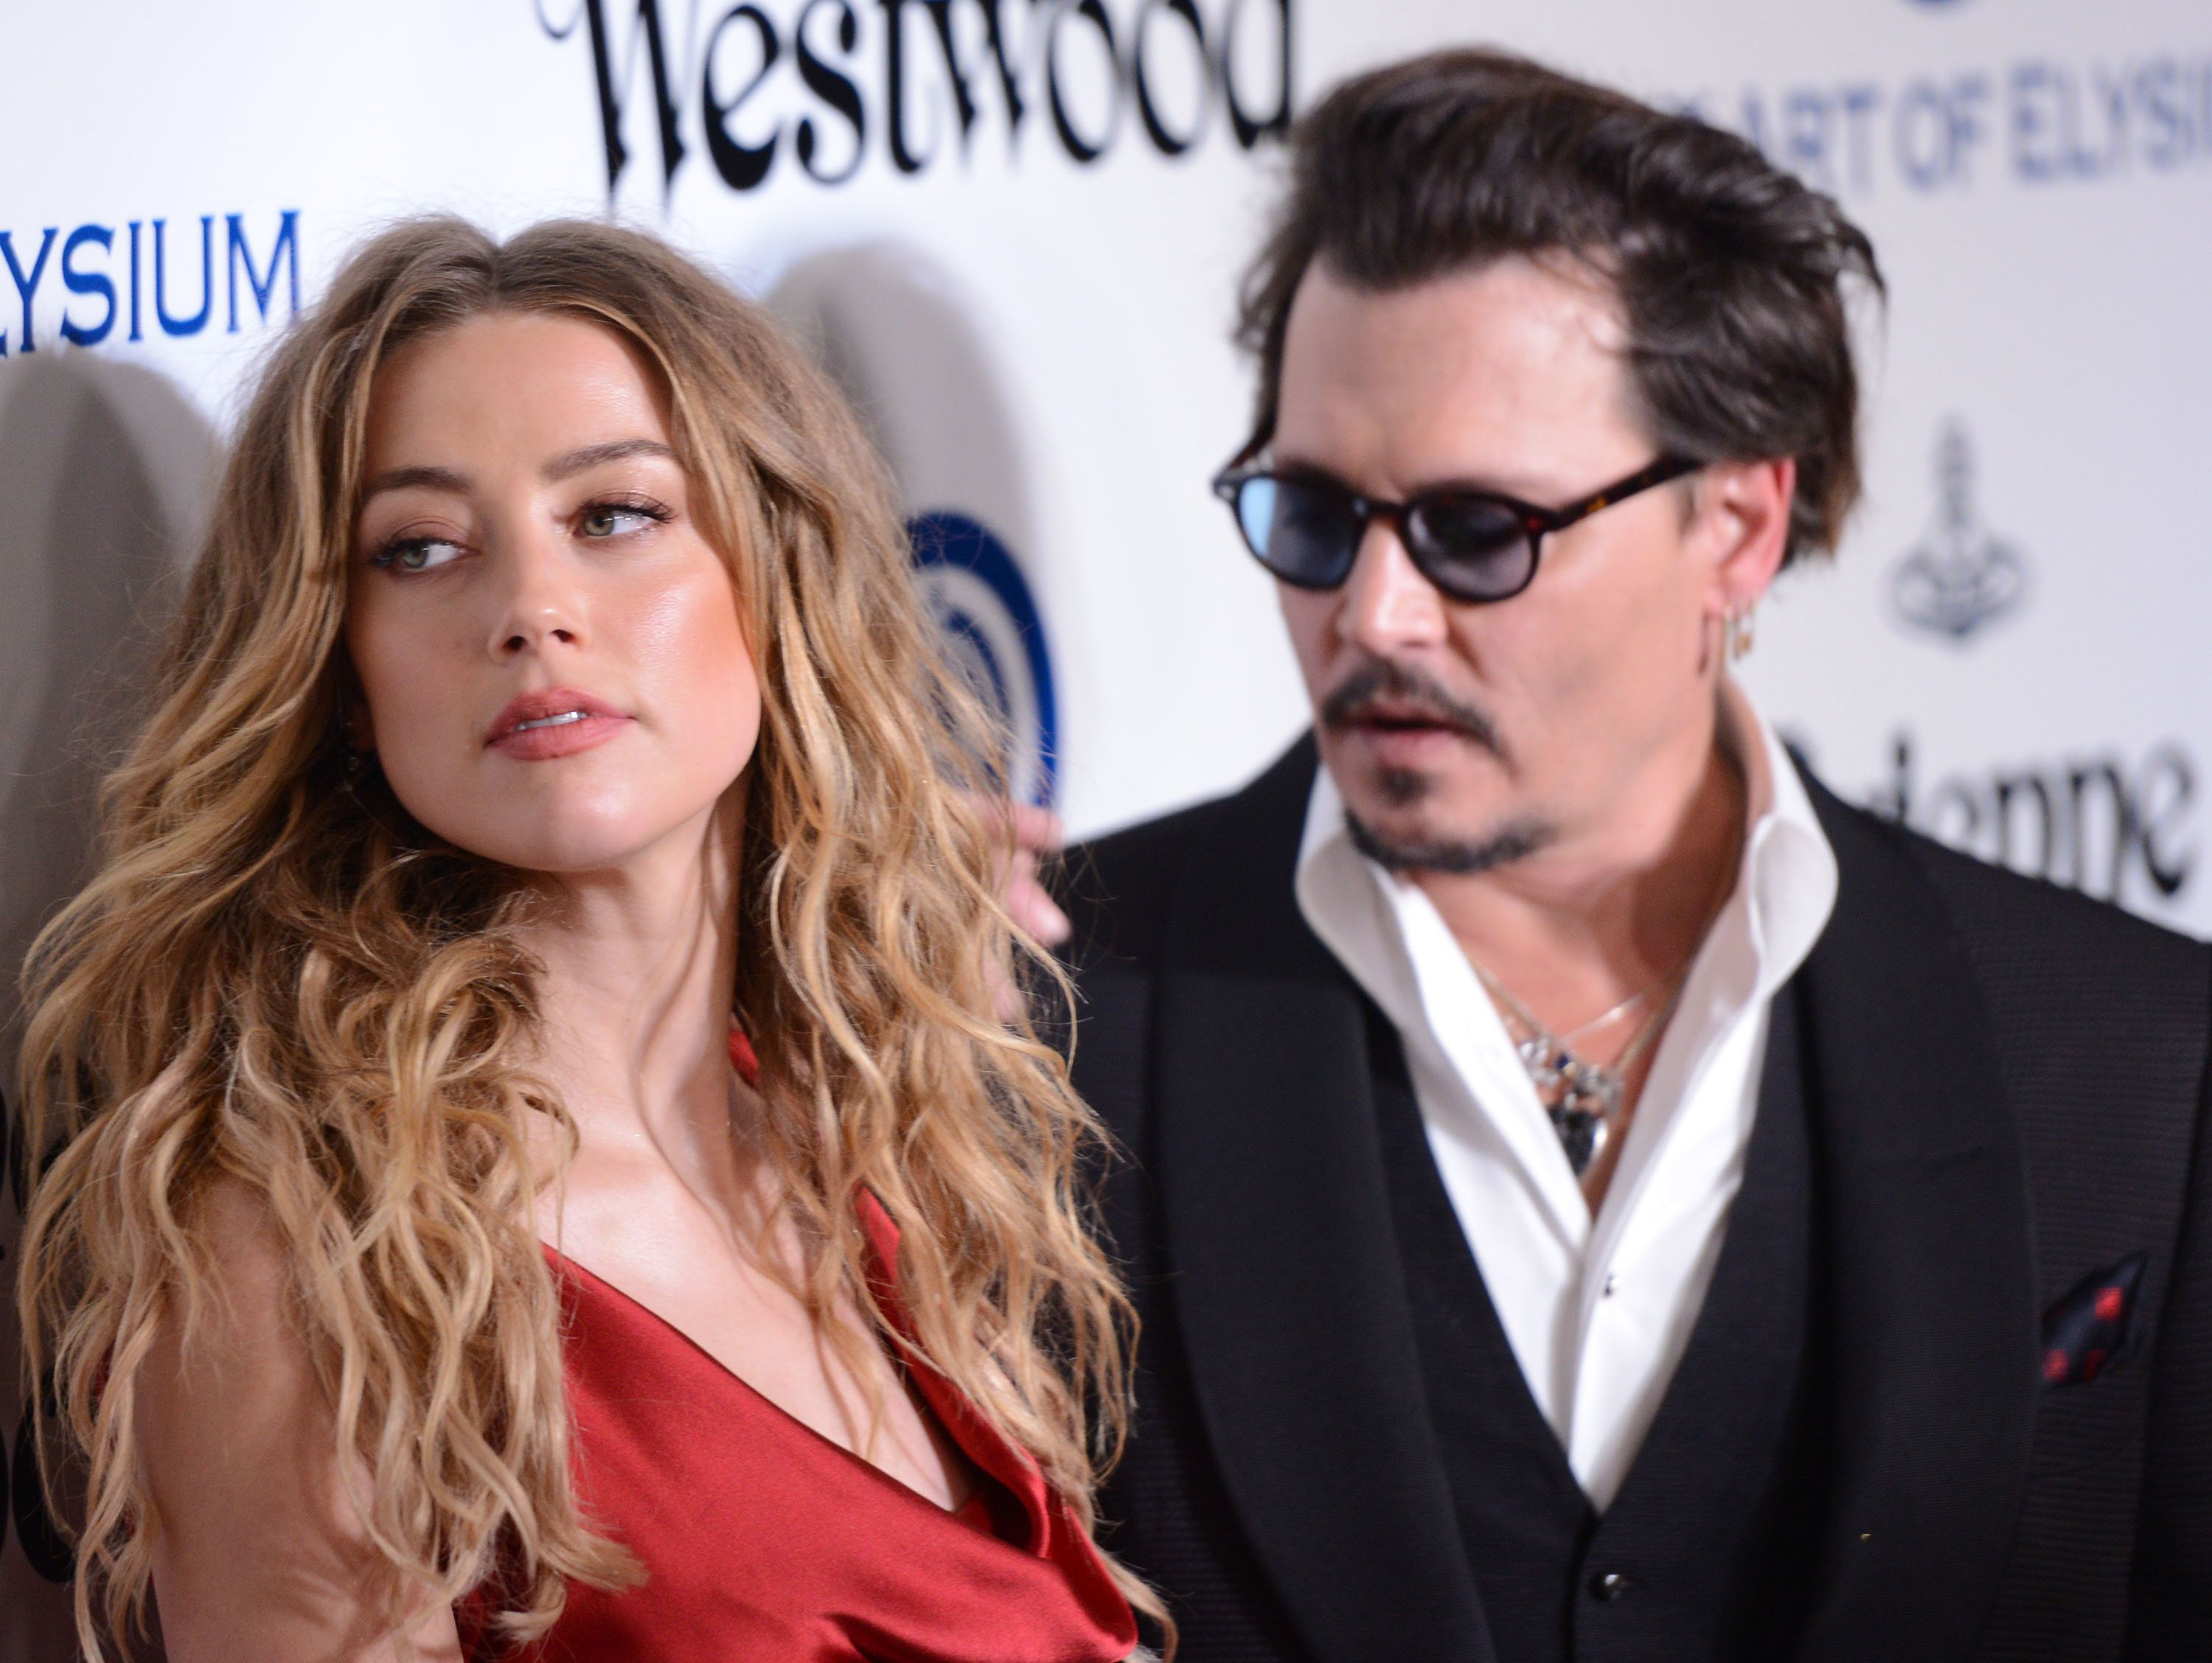 Disney CEO 'Not Worried' About Johnny Depp Abuse